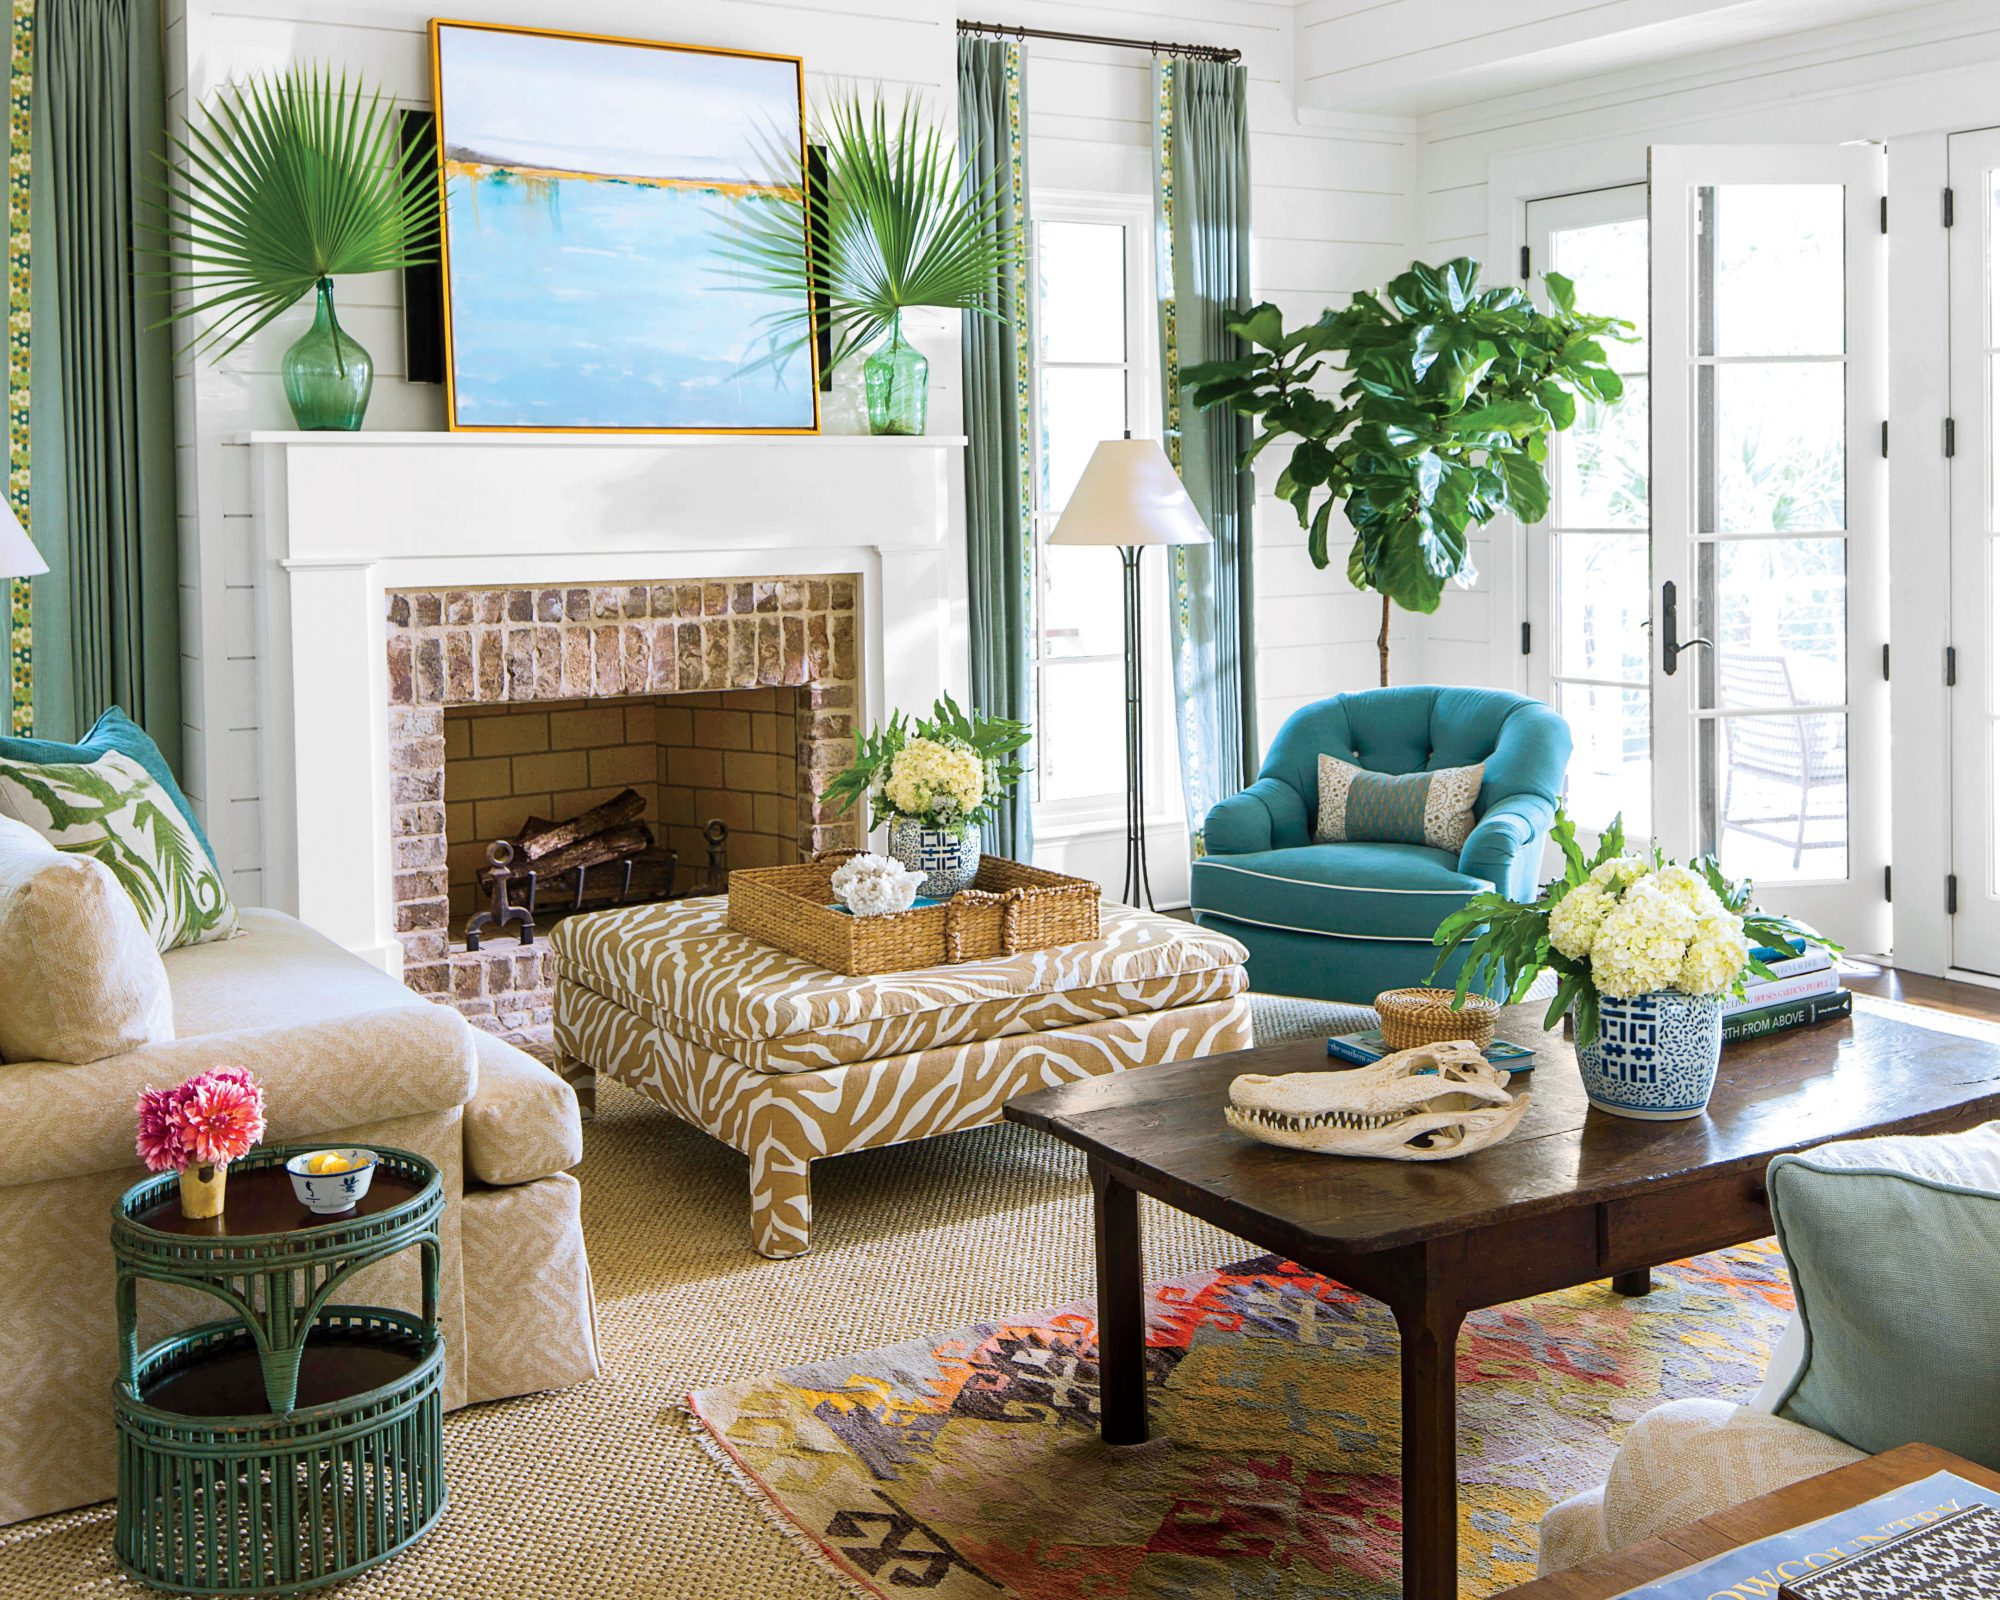 Living Room Decor Ideas Pictures Interesting 106 Living Room Decorating Ideas  Southern Living Decorating Design